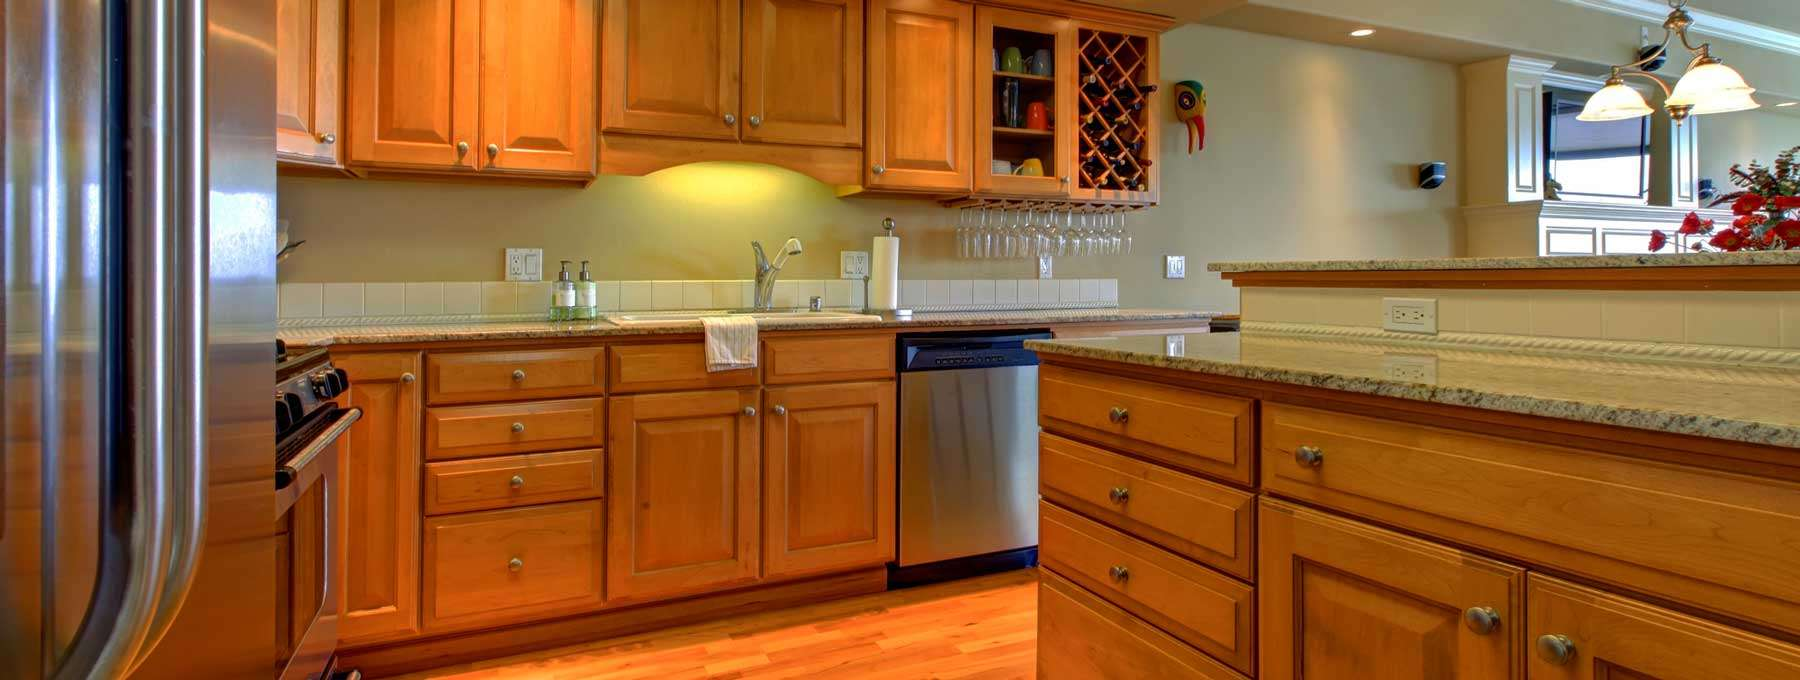 Selecting Your Kitchen Cabinets L Styles Wood Choices L